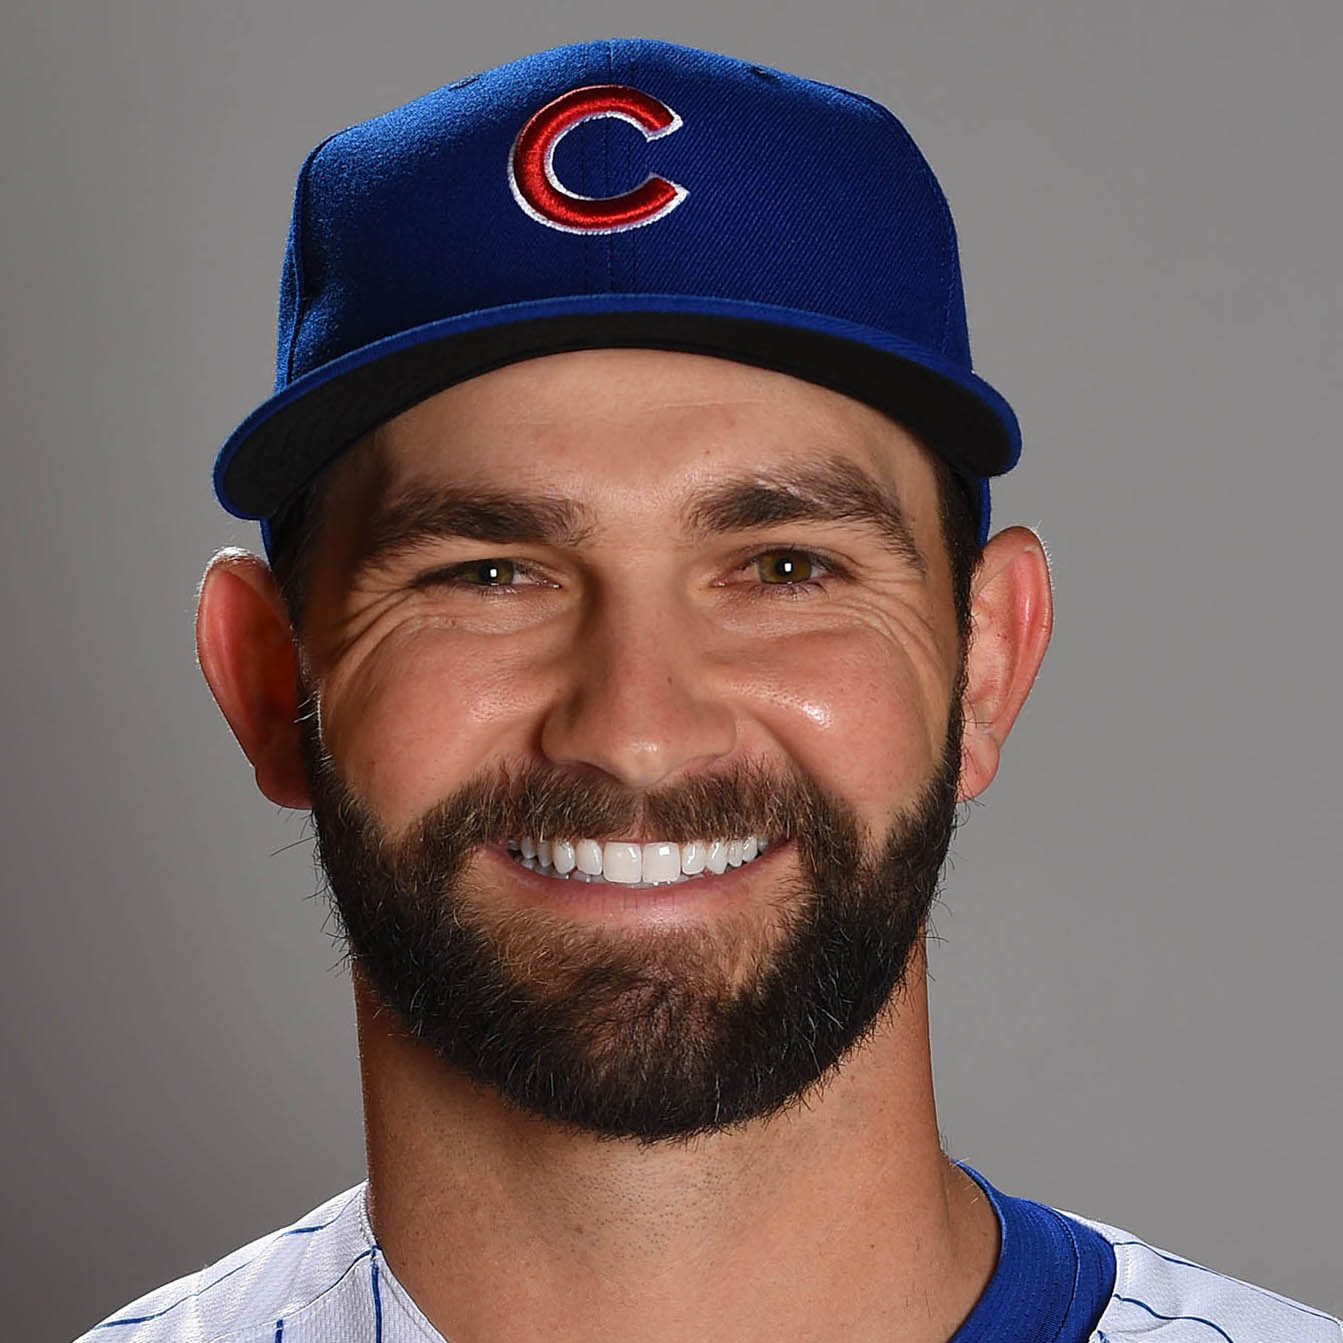 Tyler Chatwood (R) Headshot